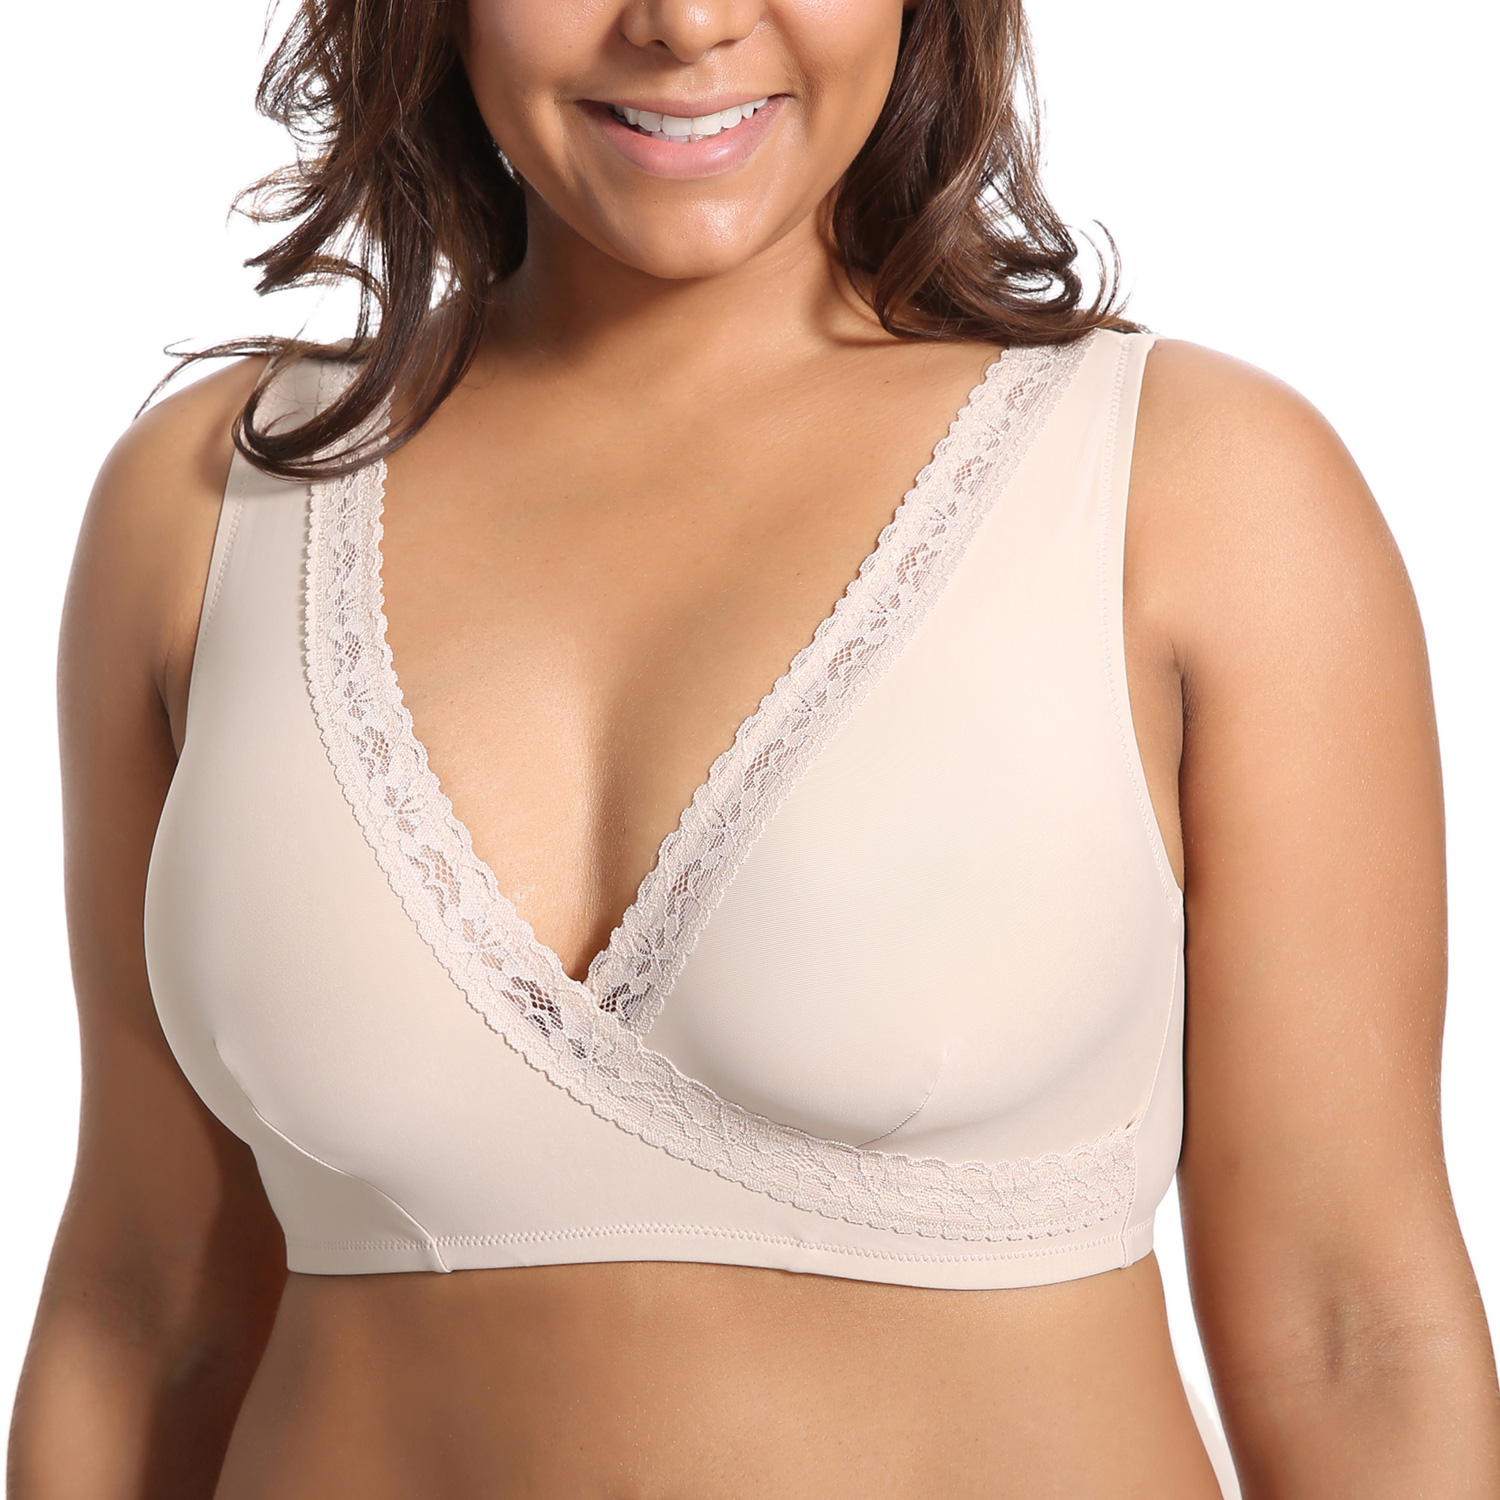 Women's Plus Size Soft Cup Comfort Wirefree Sleep Lace Bra